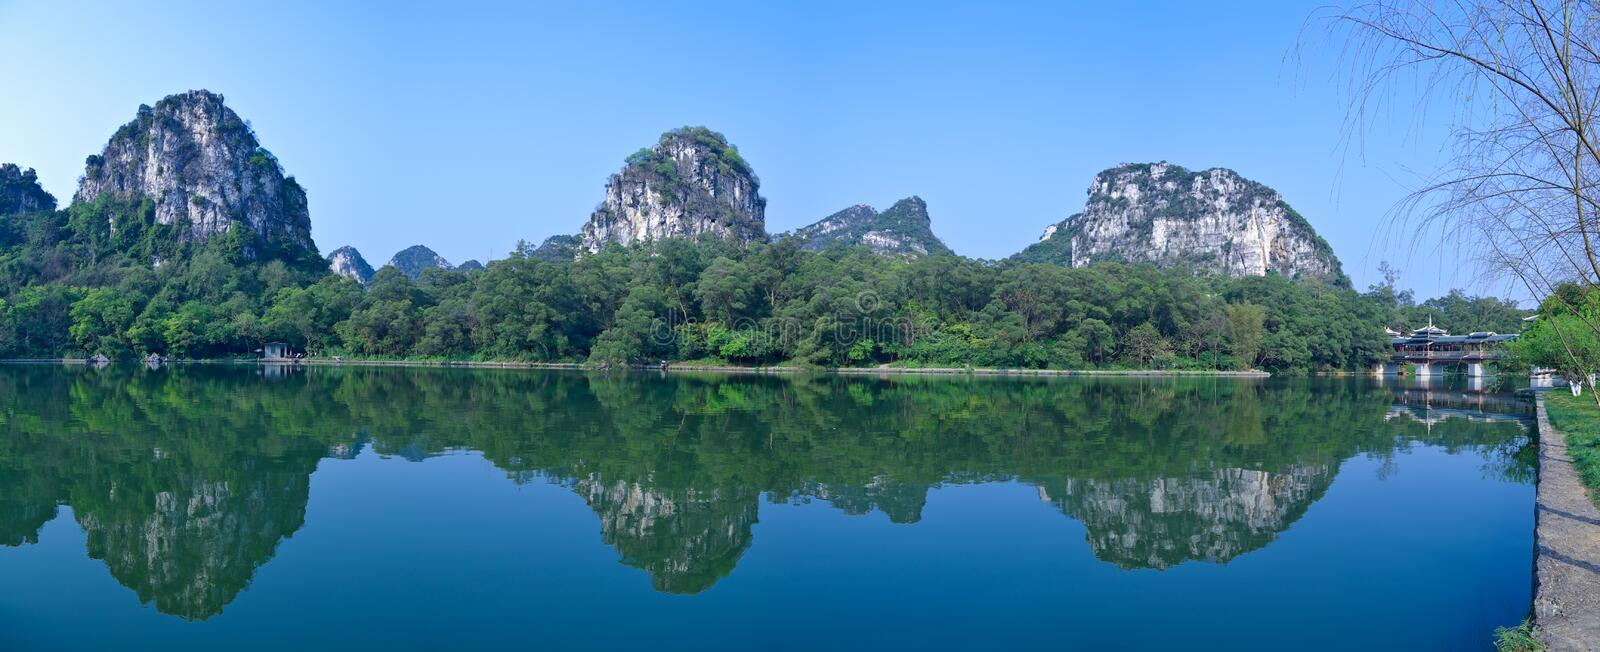 Mountains and lake. Natural karst landscapes ,mountains reflection in the lake stock image